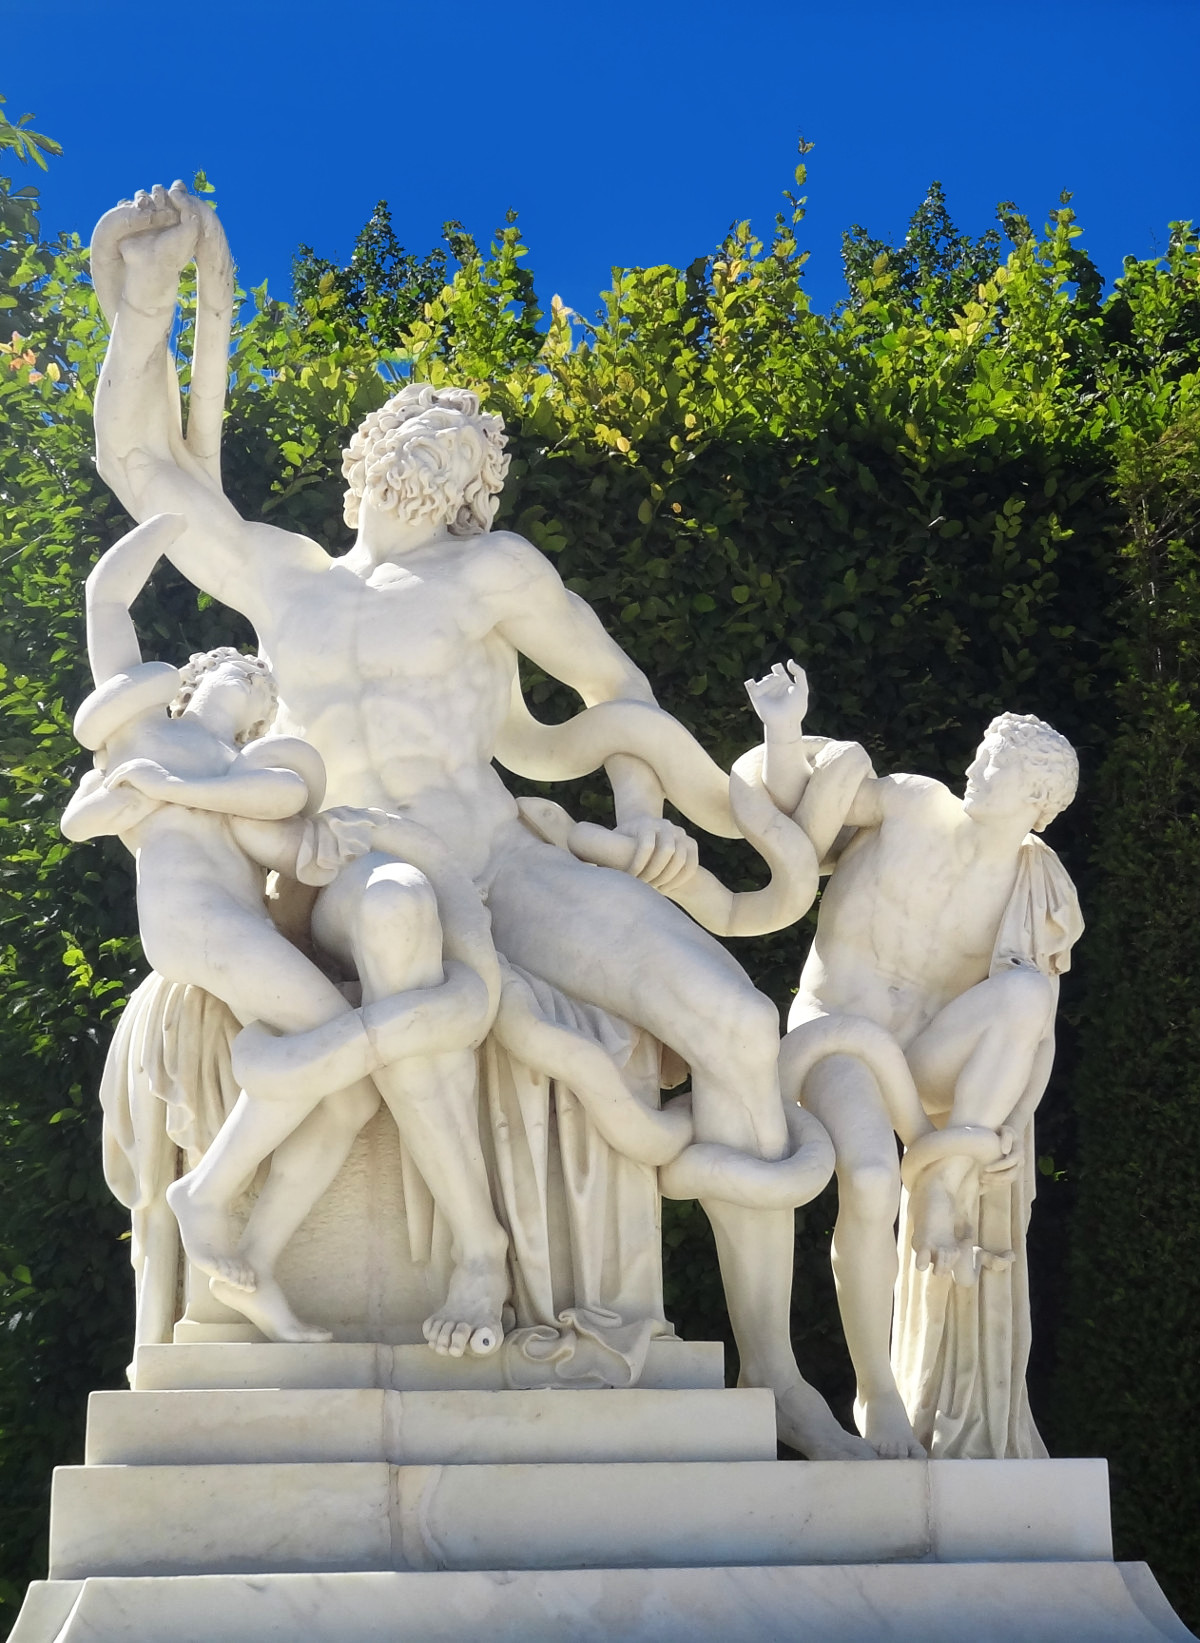 Laocoön and his sons (1696). Credit Adesio2010